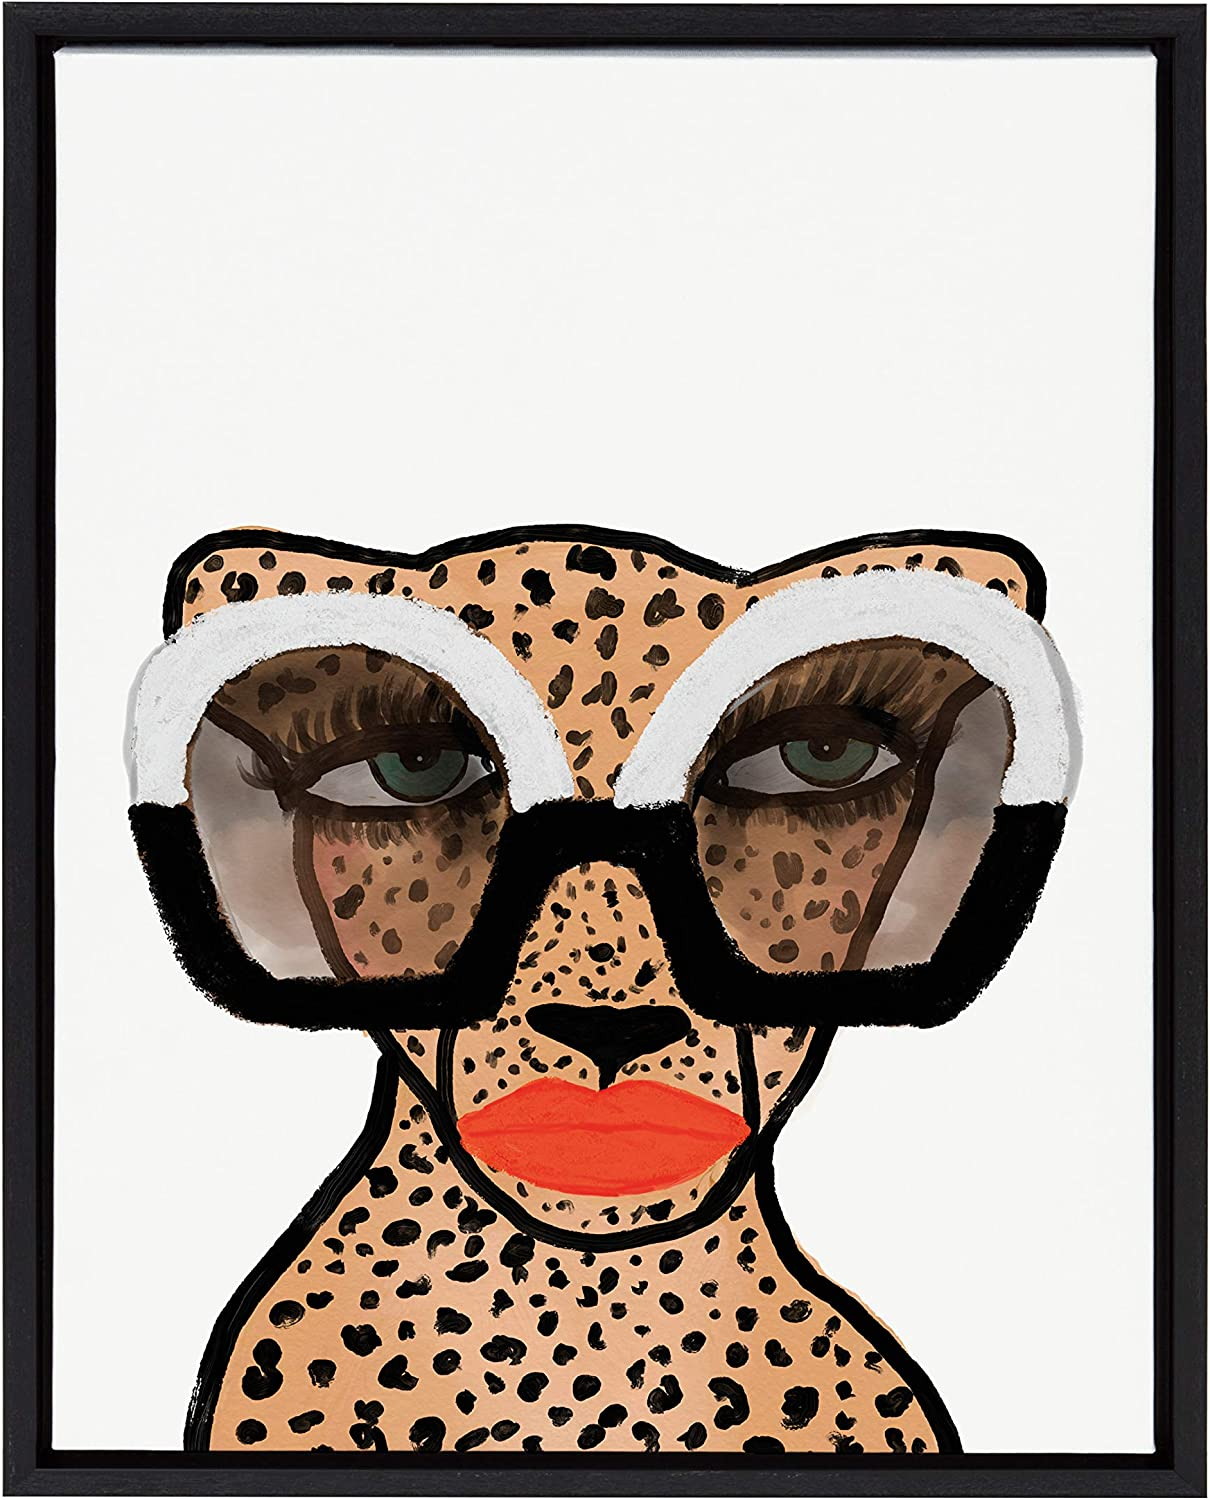 Kate and Laurel Sylvie Cheetah 4 Framed Canvas Wall Art by Kendra Dandy of Bouffants and Broken Hearts, 18x24 Black, Modern Animal Art Decor for Wall